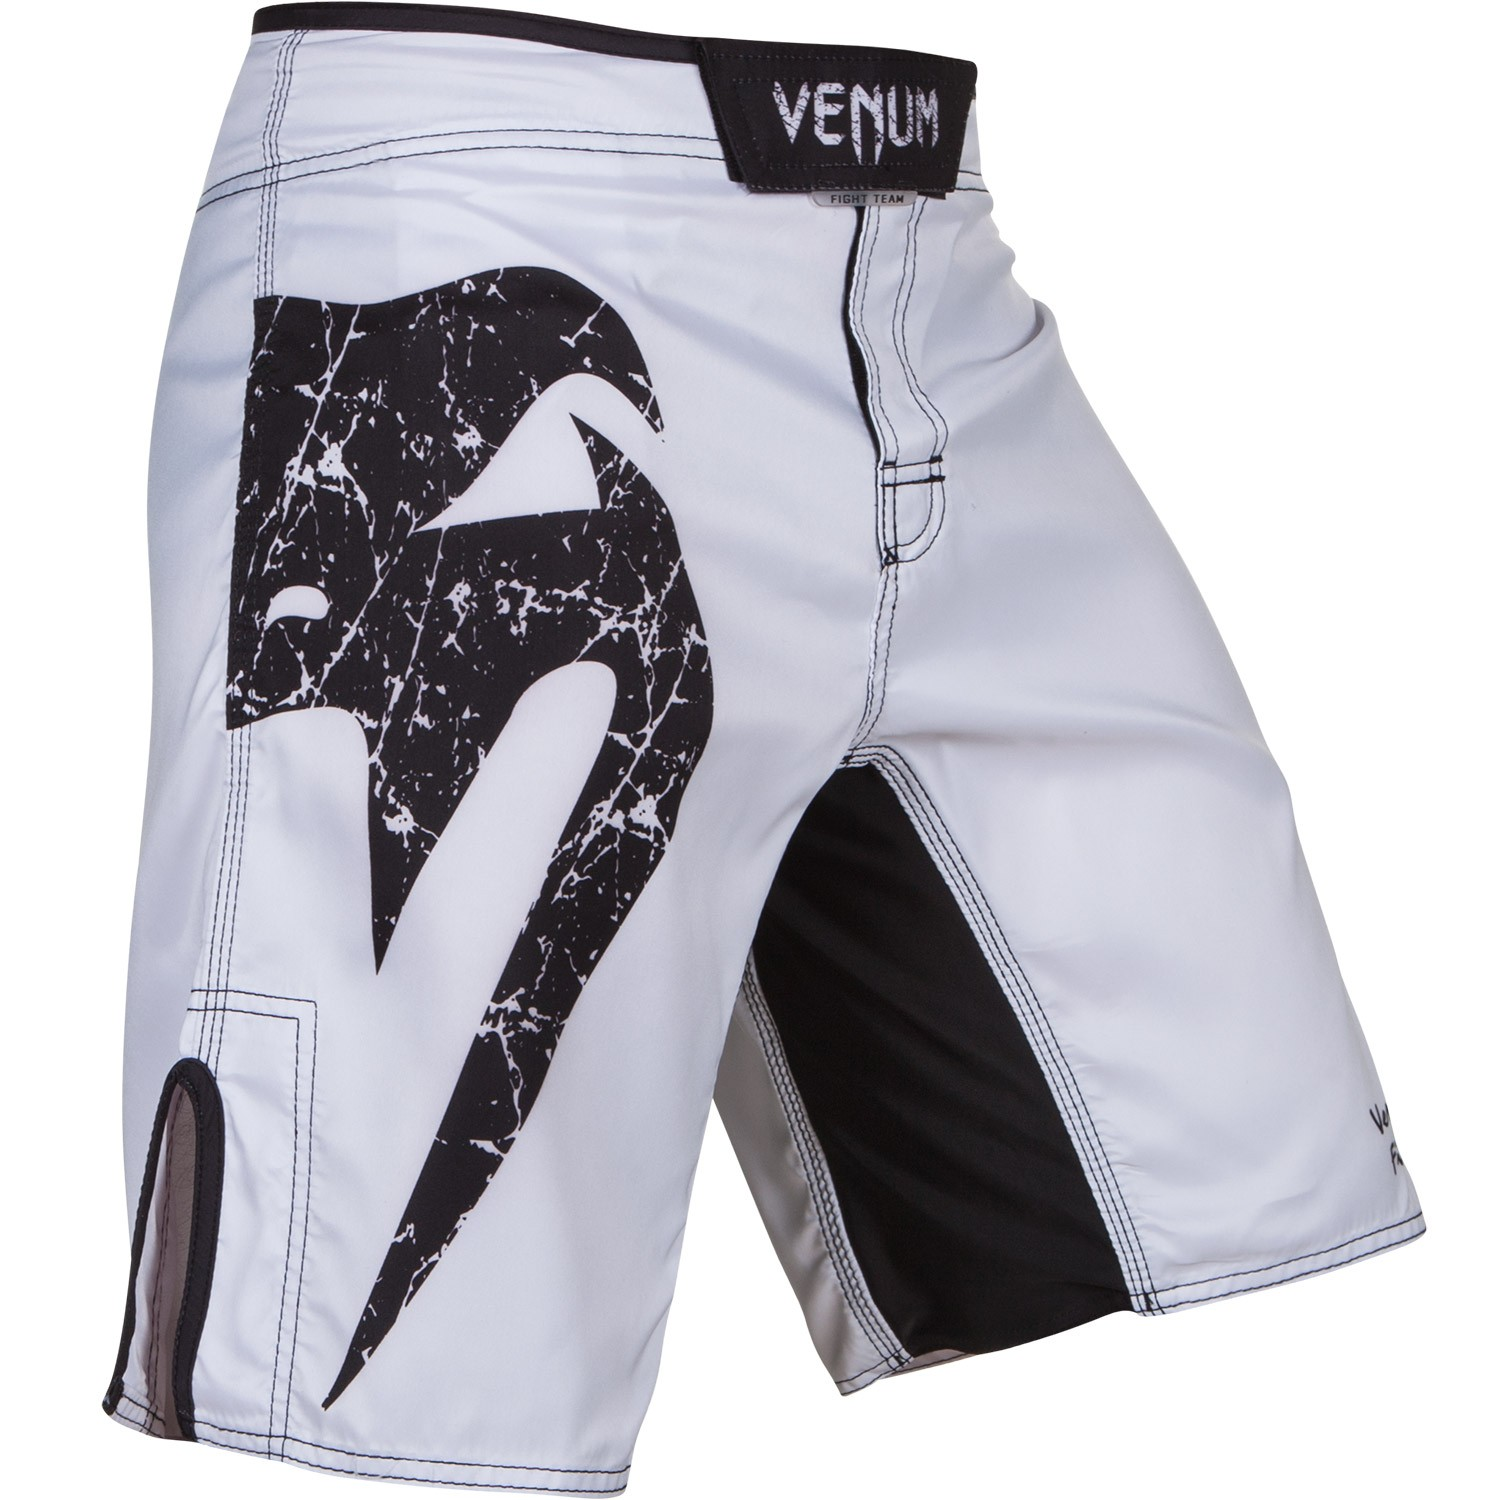 Шорты ММА Venum Original Giant White<br>Вес кг: 250.00000000;